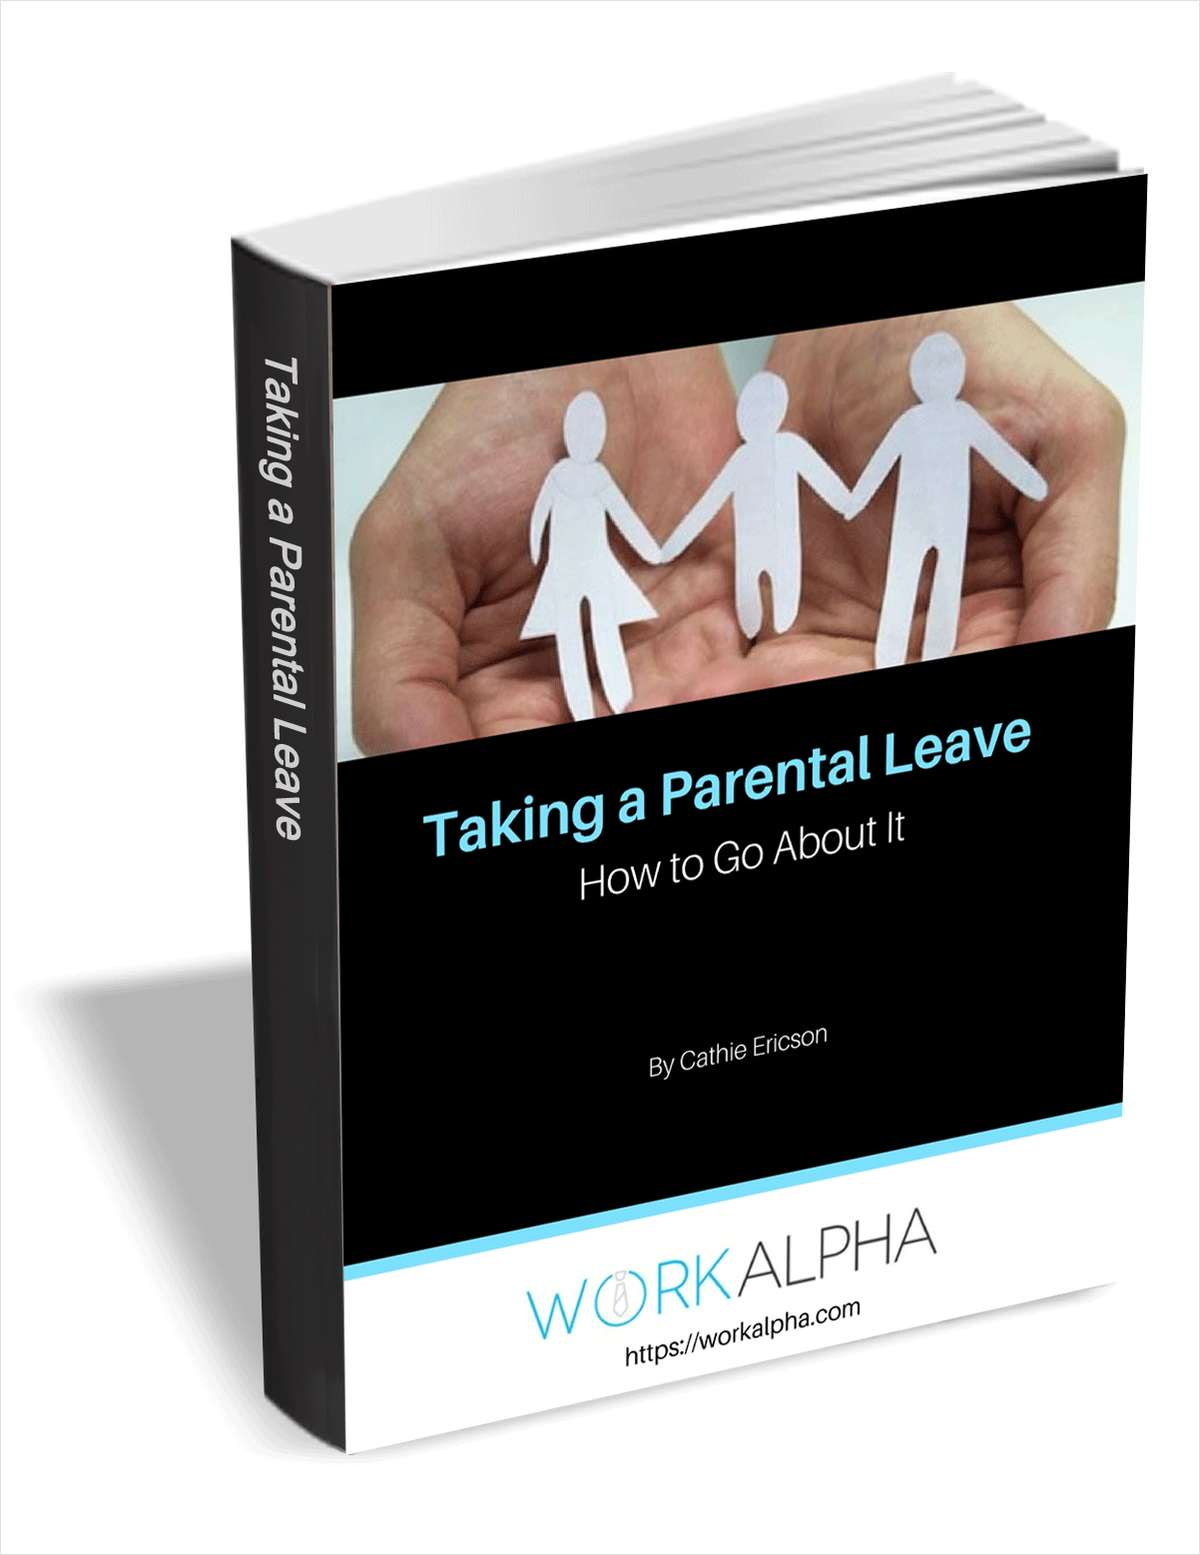 Taking a Parental Leave - How to Go About it